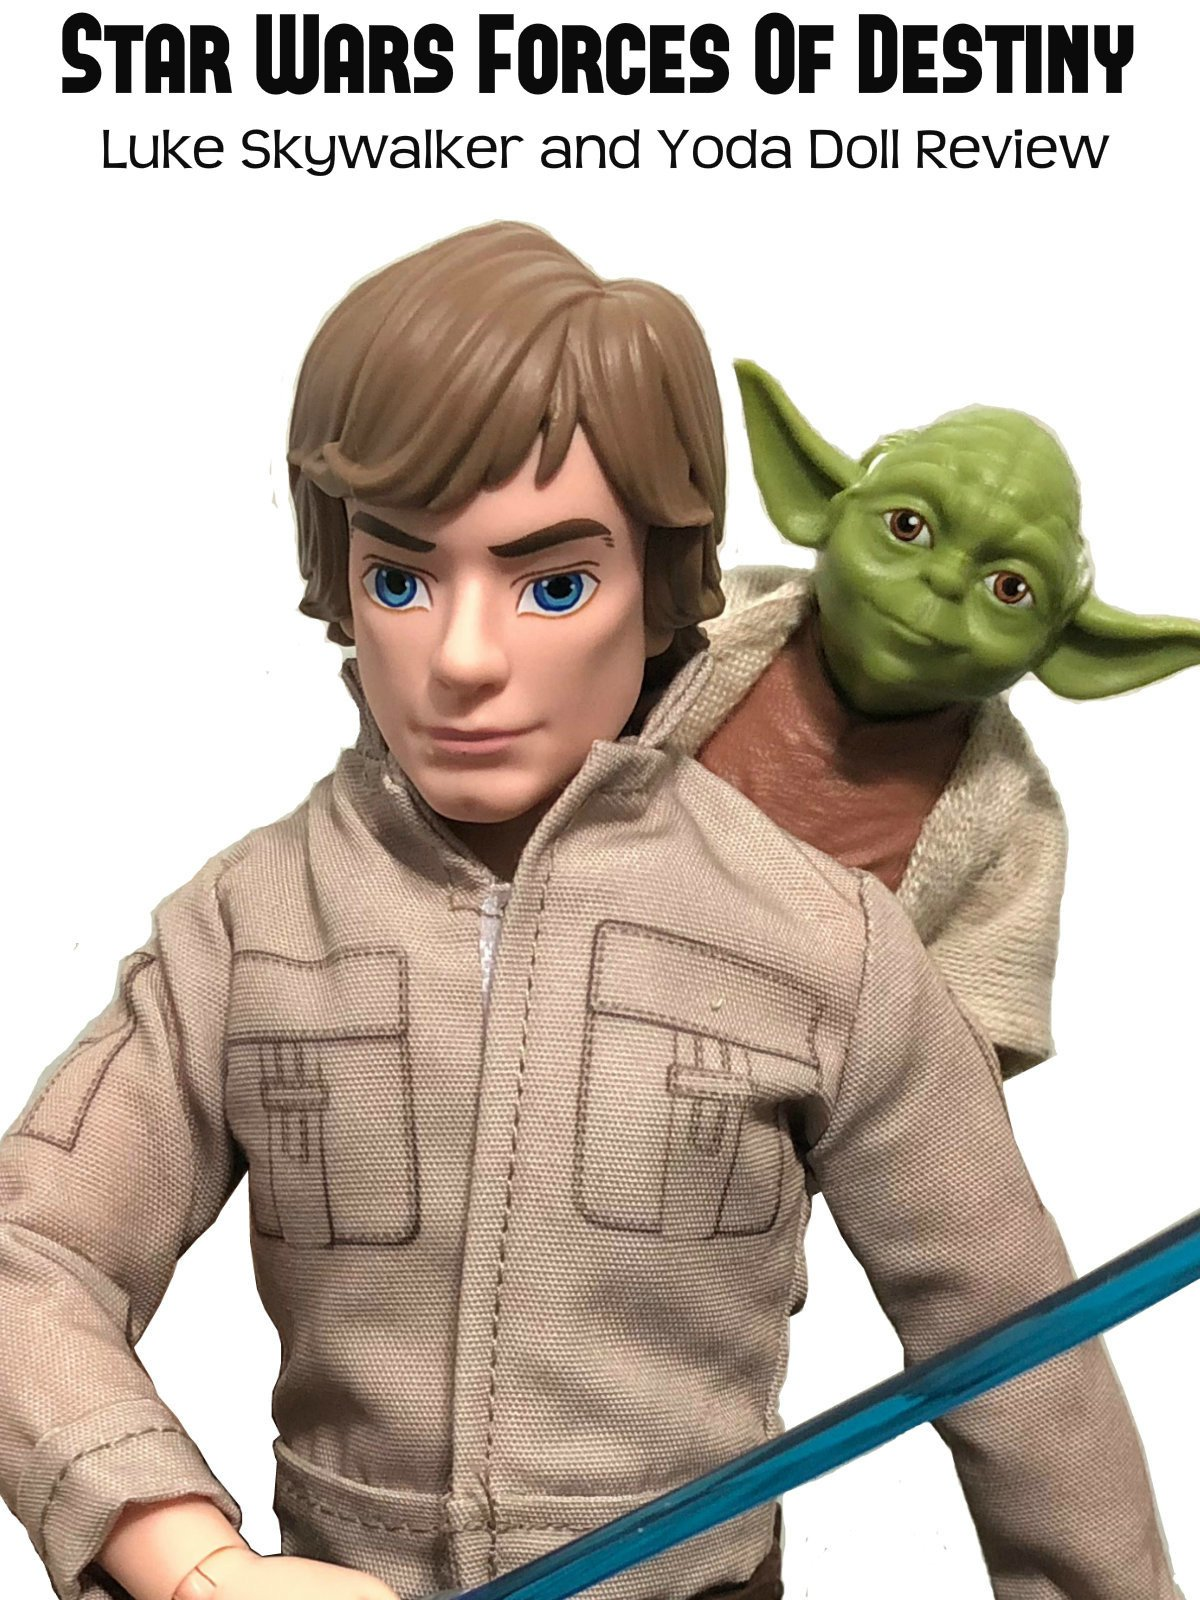 Review: Star Wars Forces Of Destiny Luke Skywalker and Yoda Doll Review on Amazon Prime Video UK